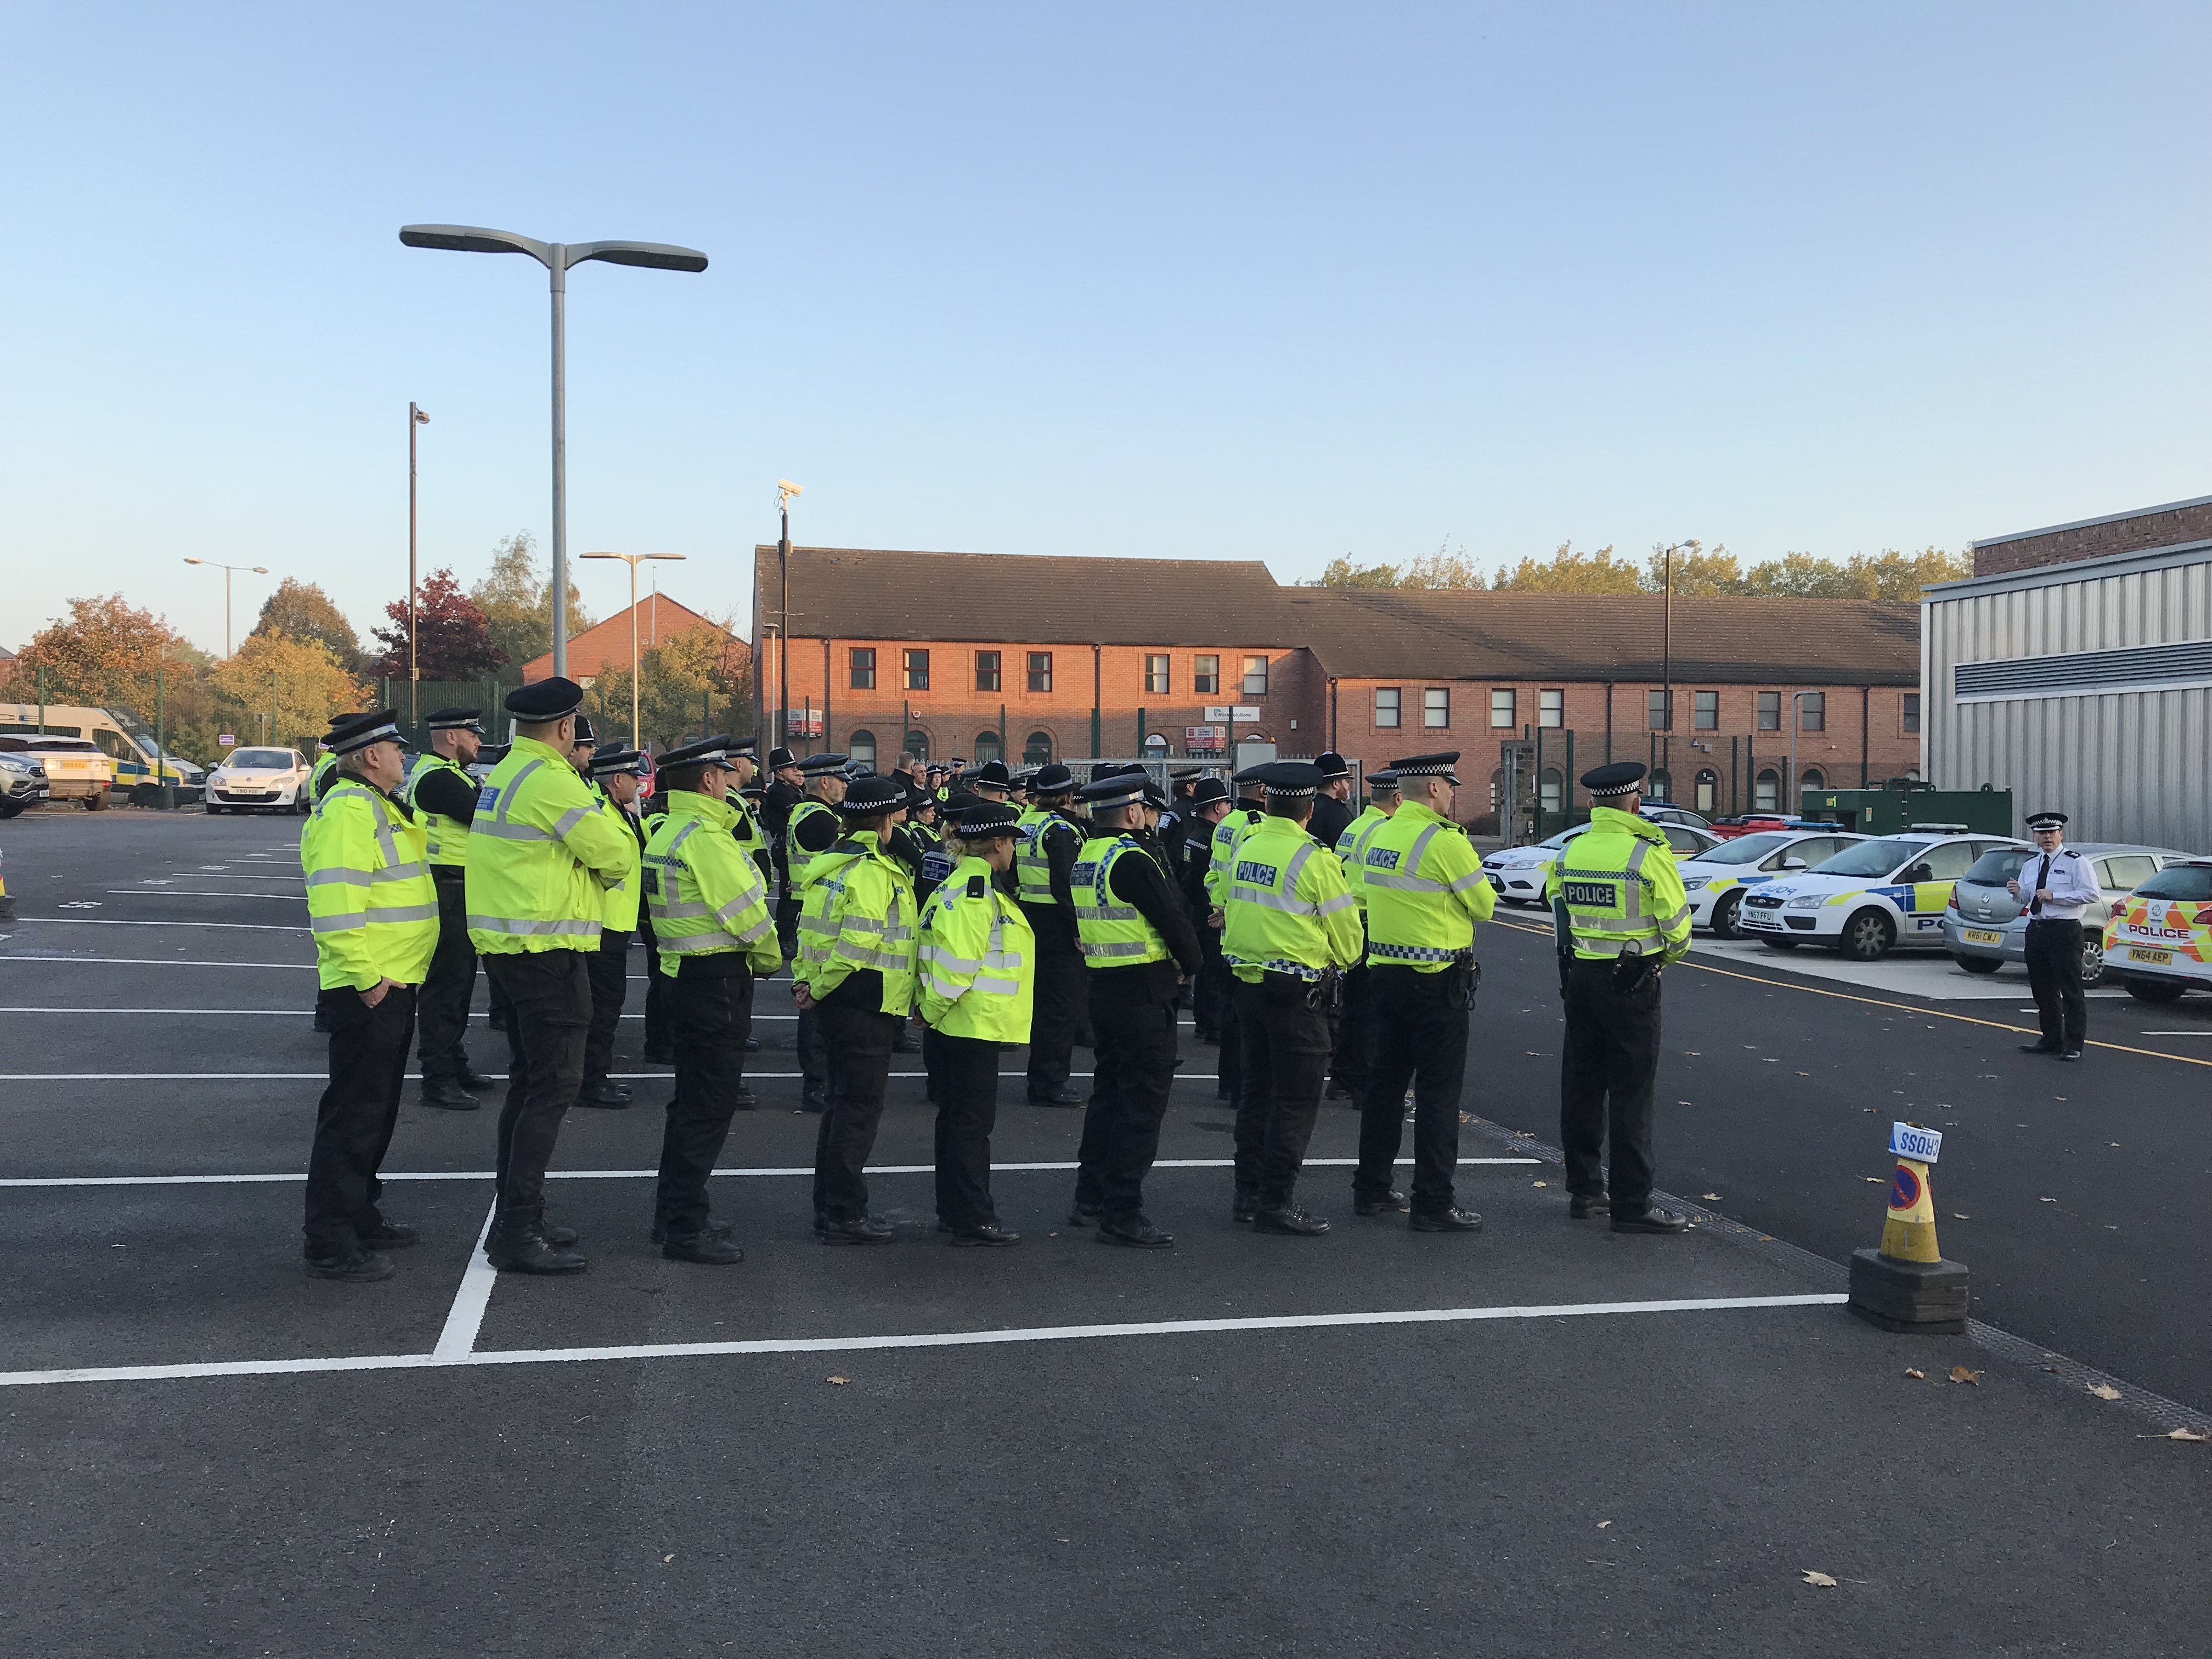 Police stood waiting in a car park